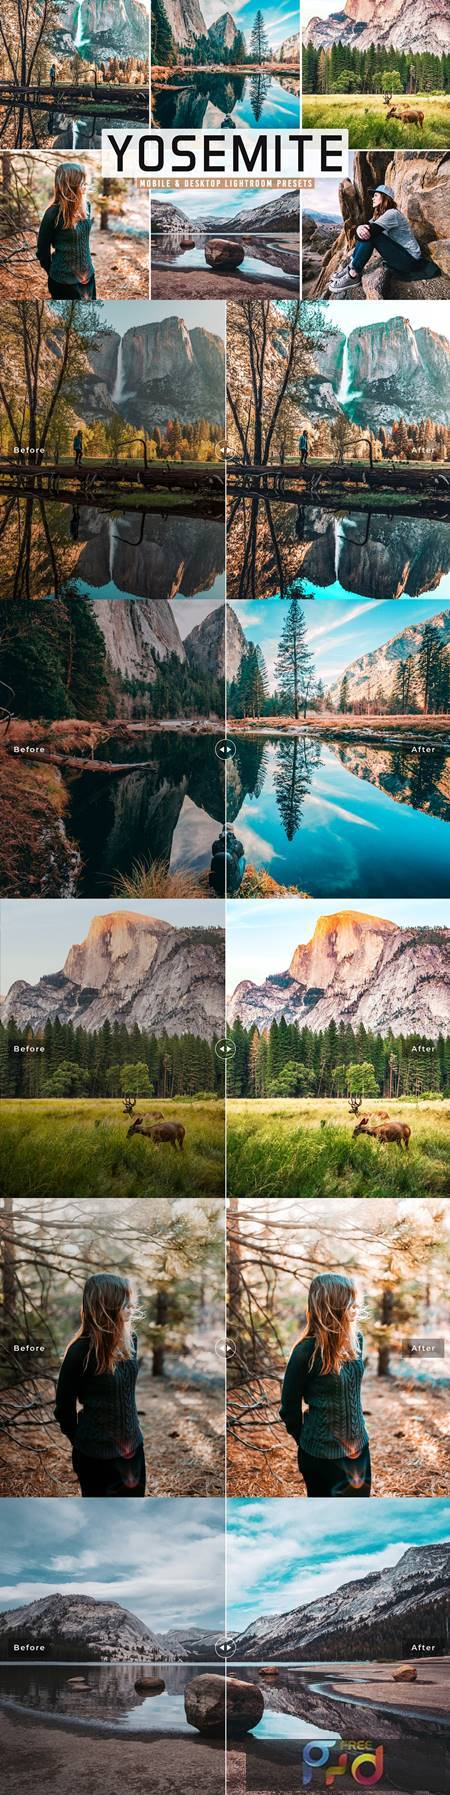 Yosemite Pro Lightroom Presets 5479344 1